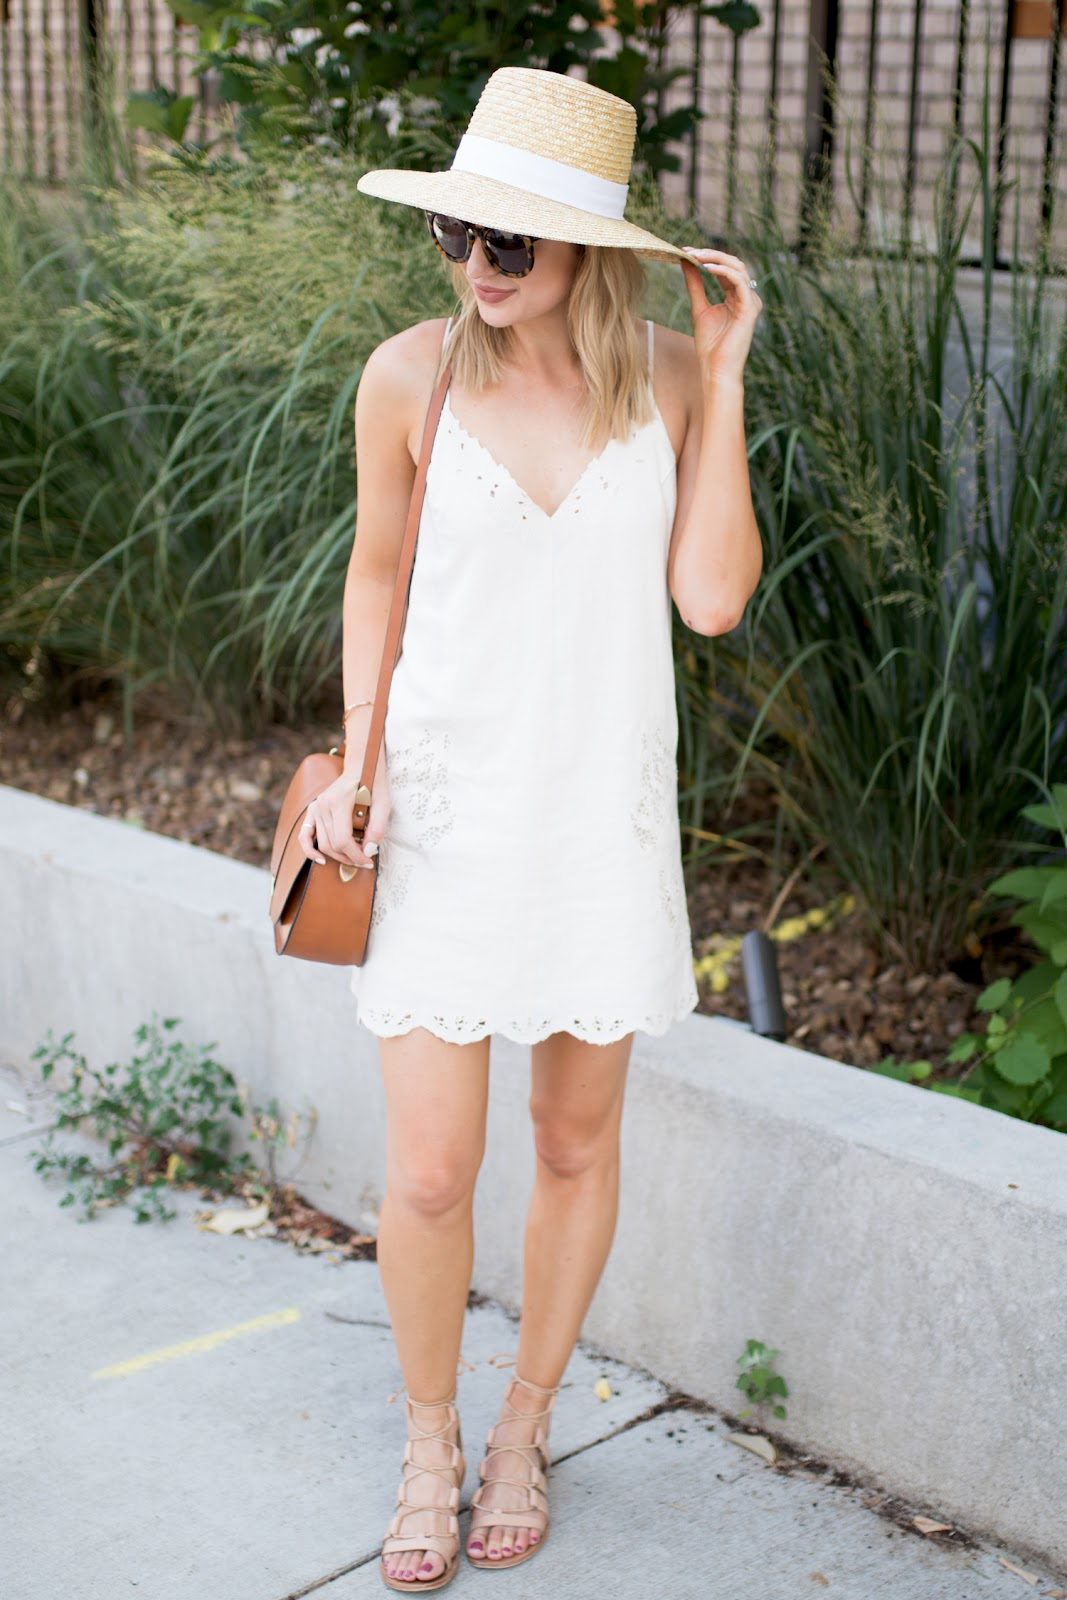 sundress + straw hat